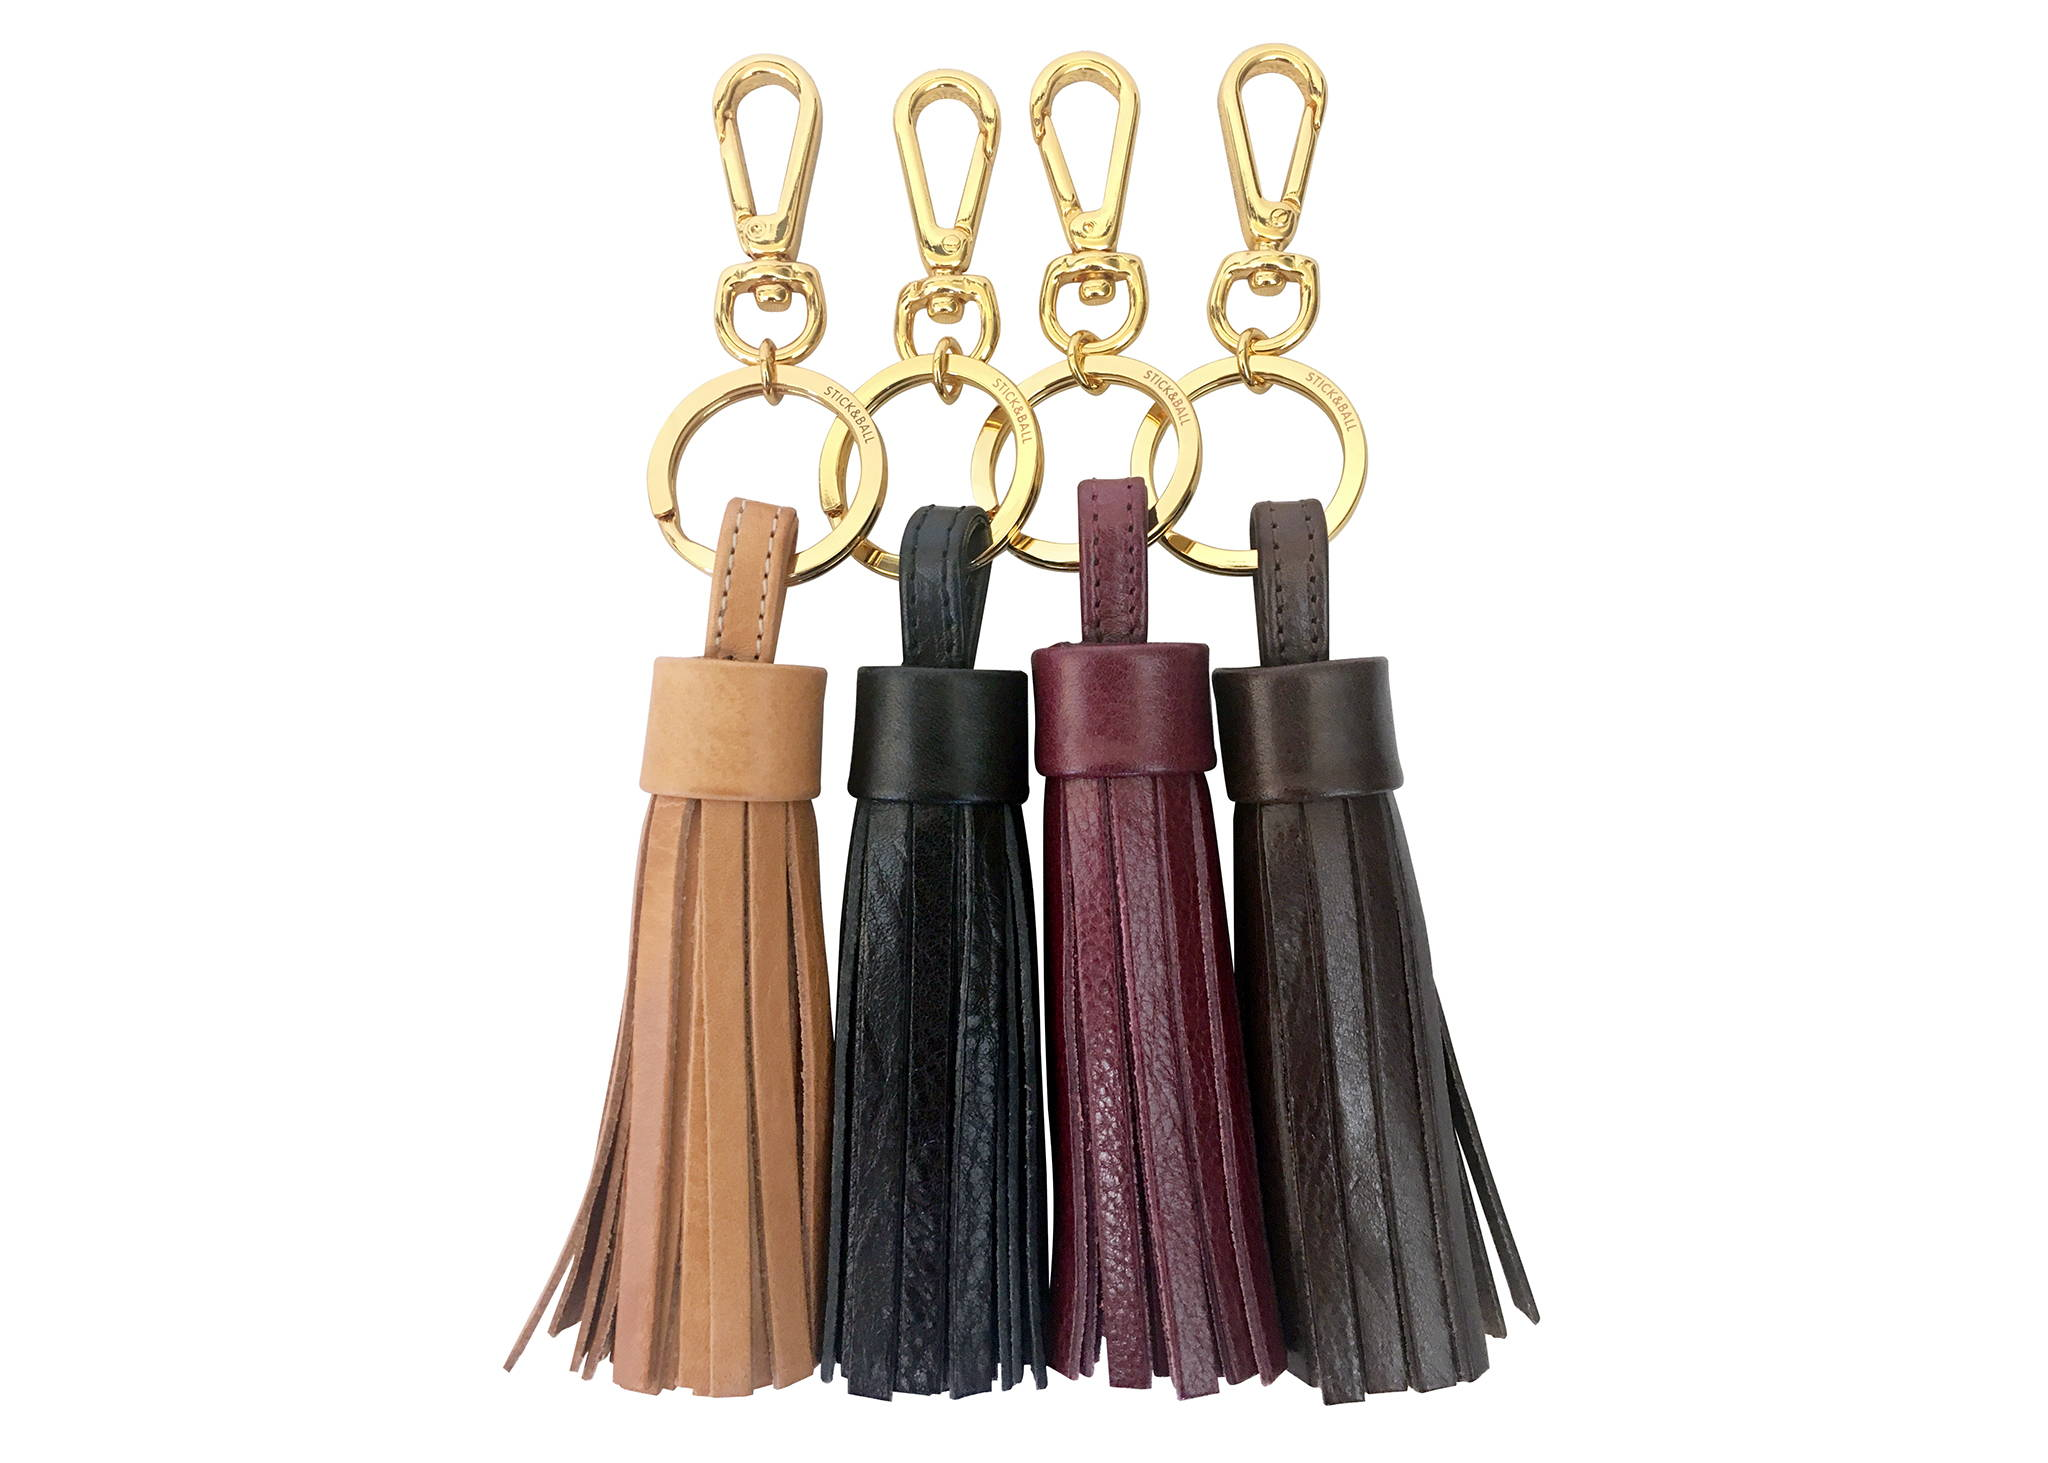 Display of vegetable-tanned Italian leather tassel keychain in tan, black, burgundy & espresso brown - Stick & Ball